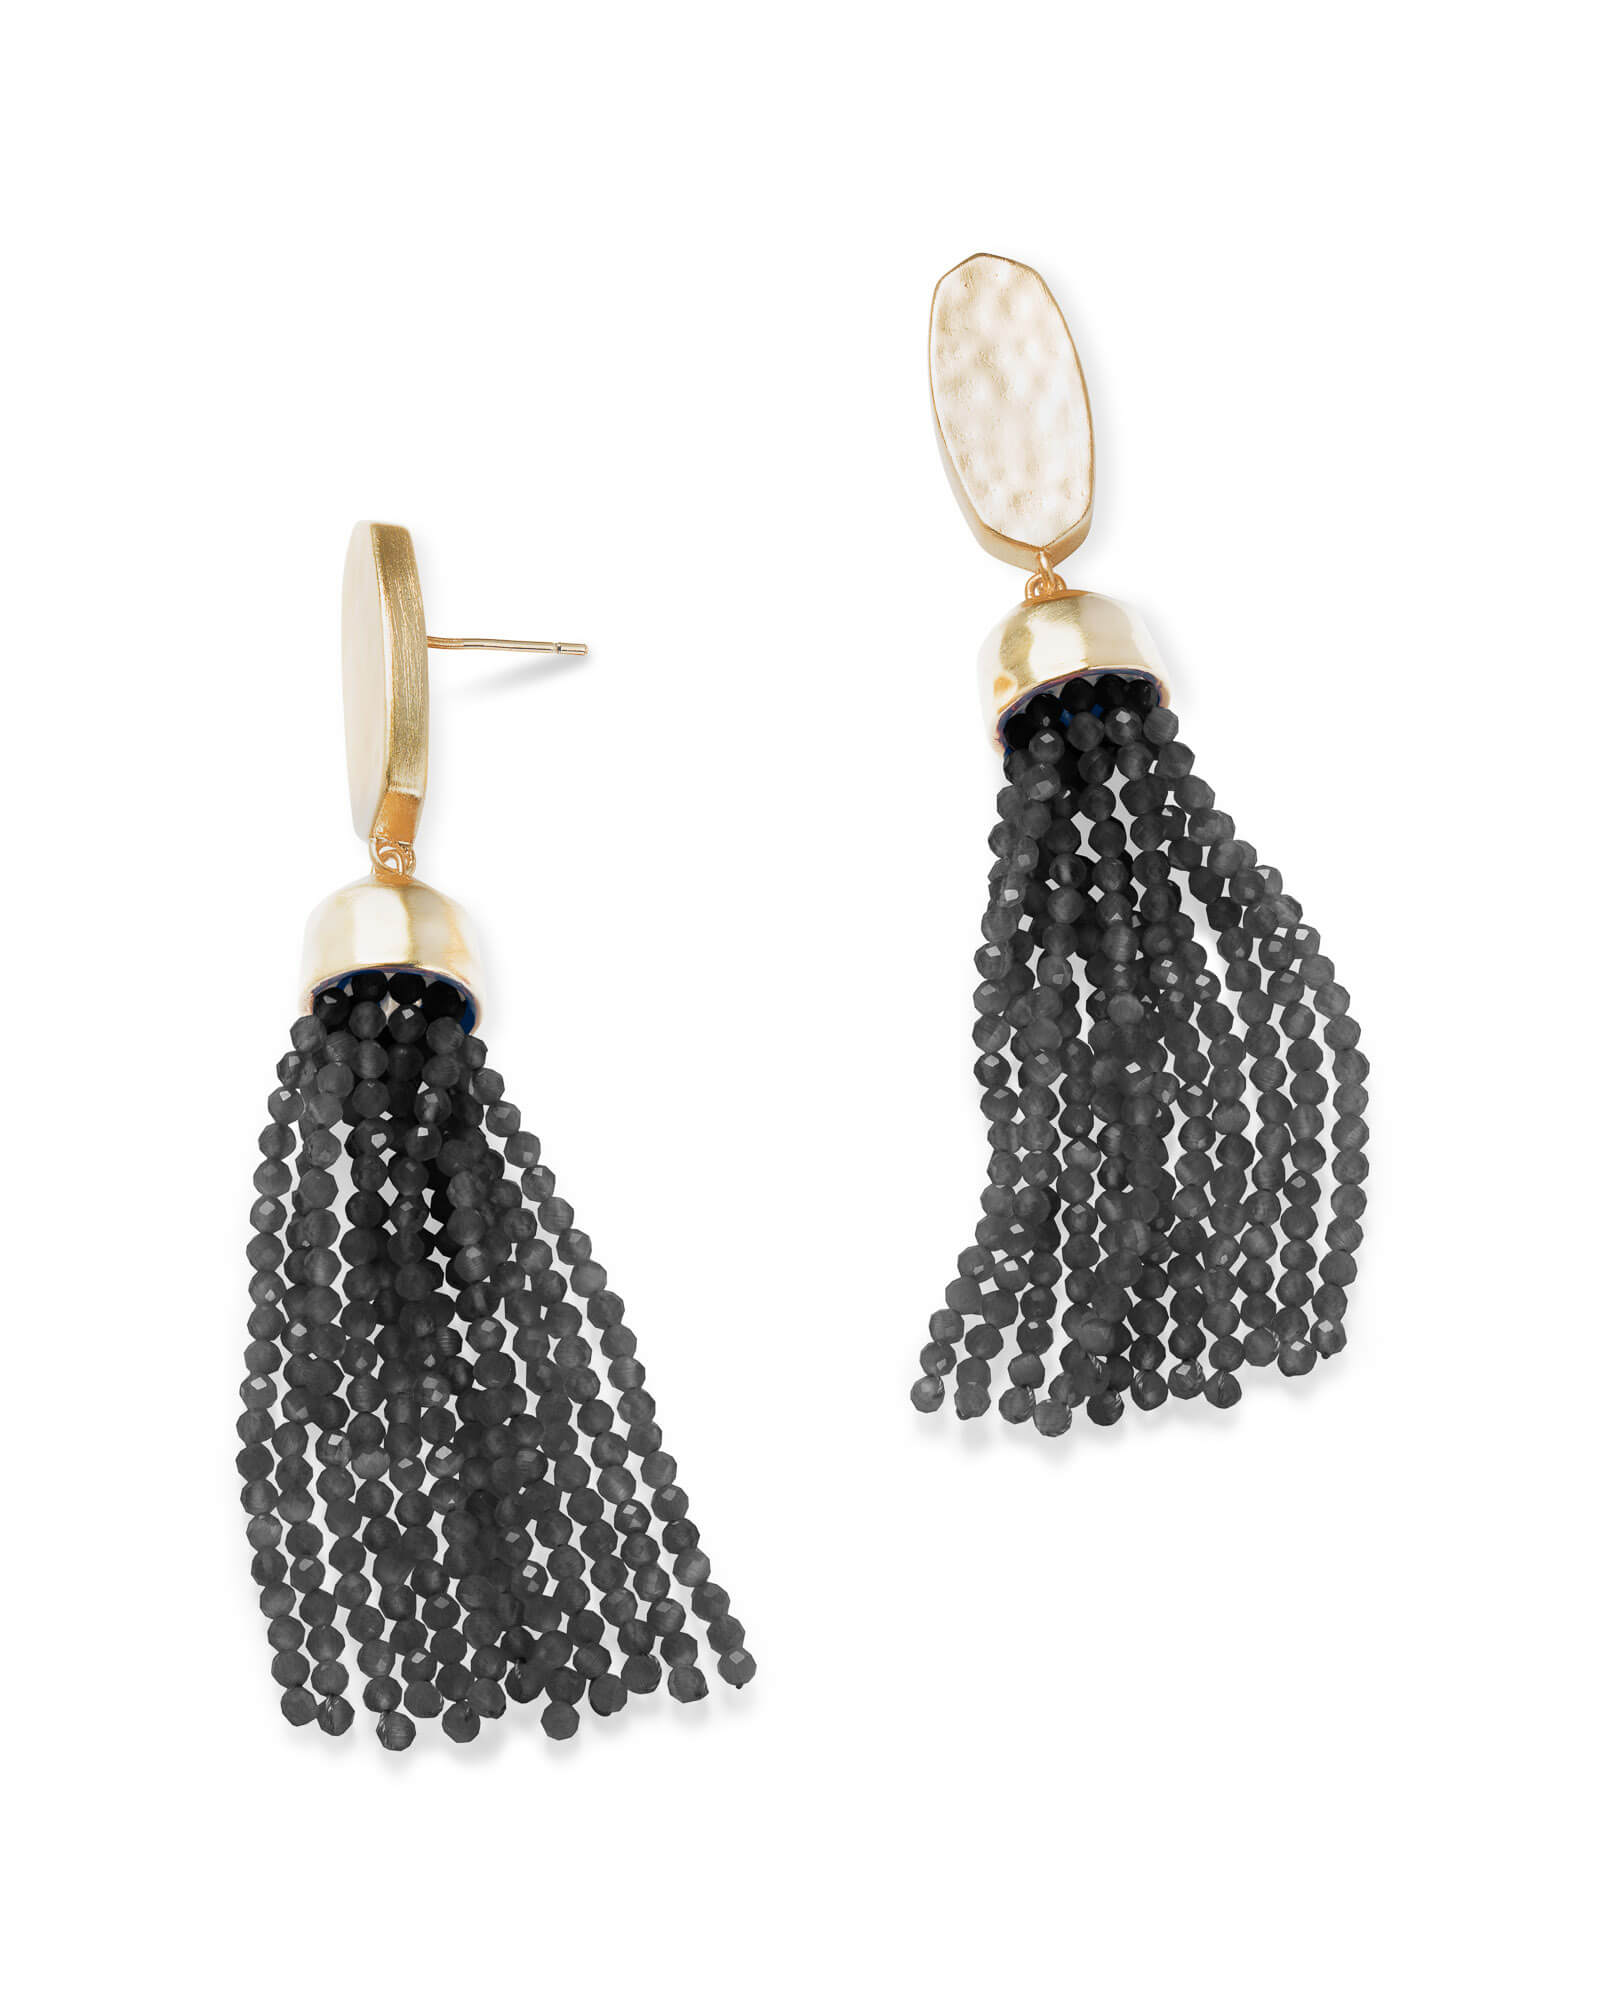 Marin Gold Statement Earrings in Black Opaque Glass